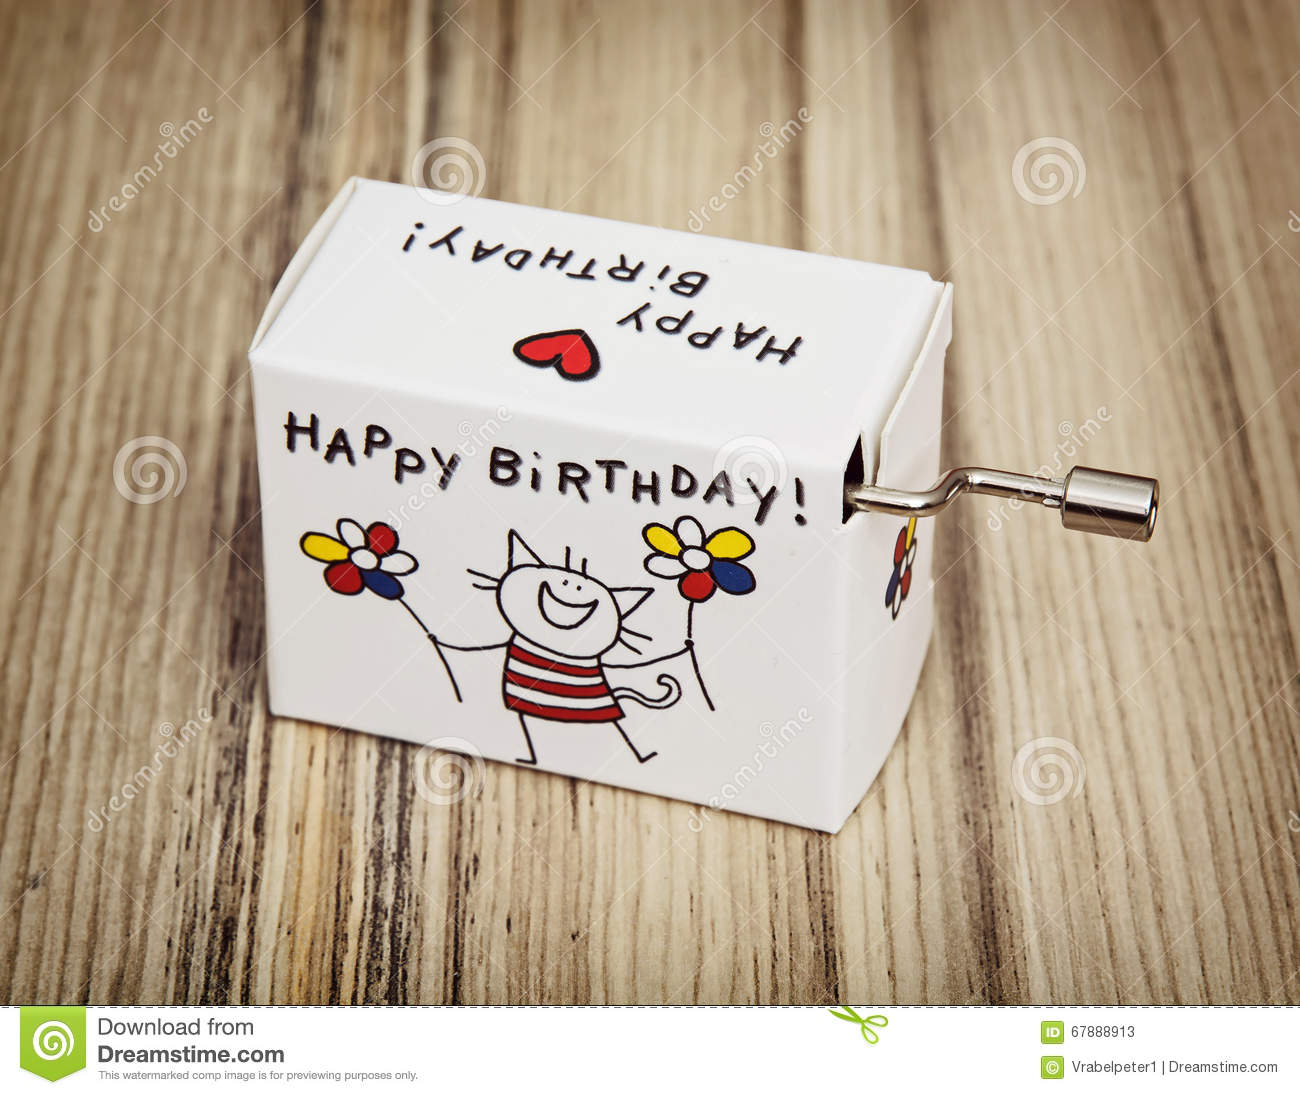 Music box with funny title happy birthday